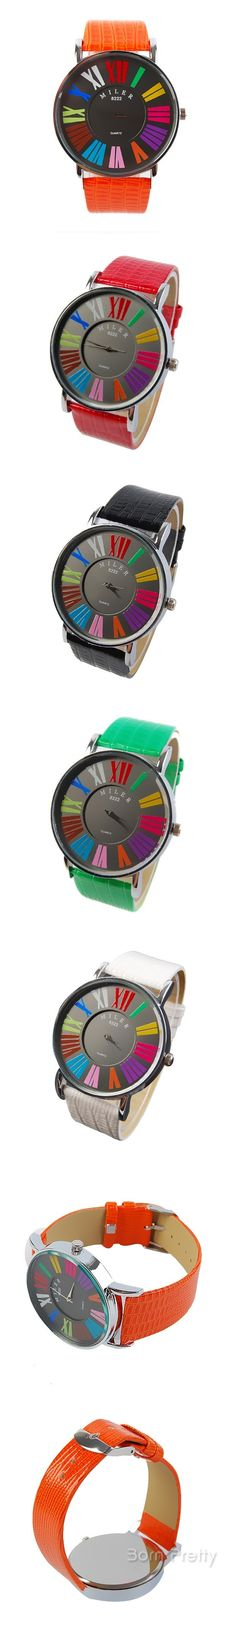 €7.50 Women's Vintage Round Dial PU Wrist Watch Colorful Analog Quartz Watch 5 Colors Selectable - BornPrettyStore.com